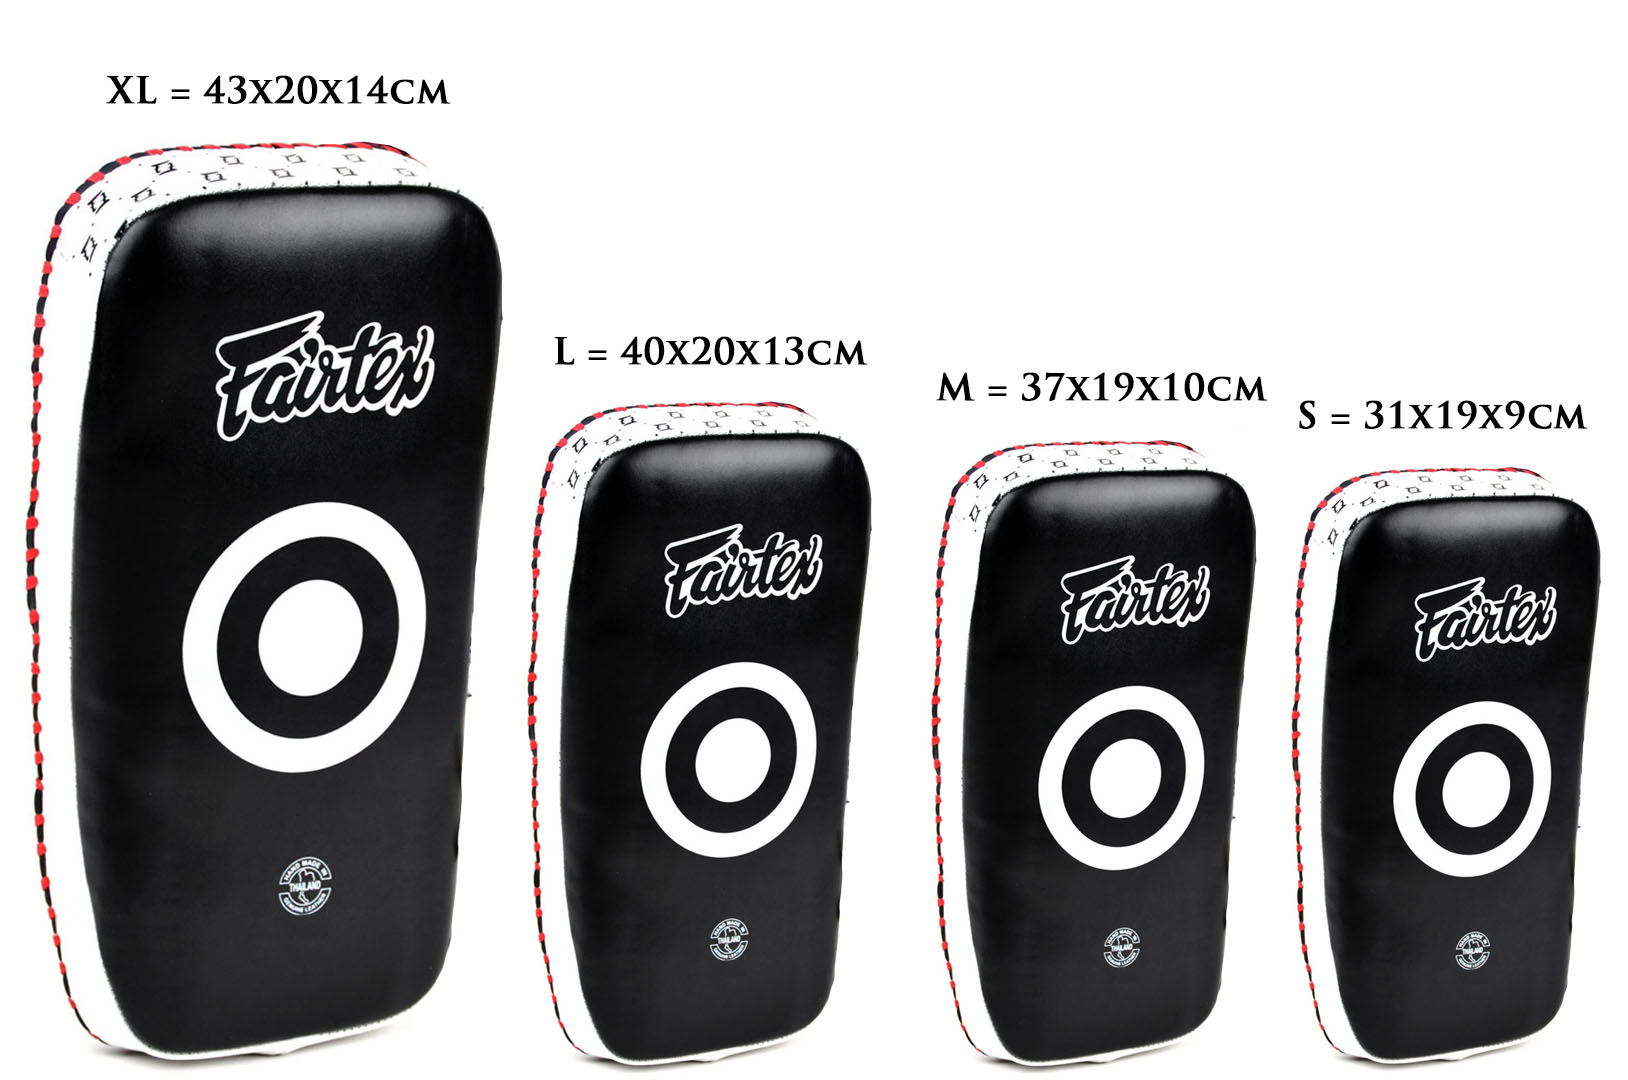 Pao Cuir Medium, Fairtex